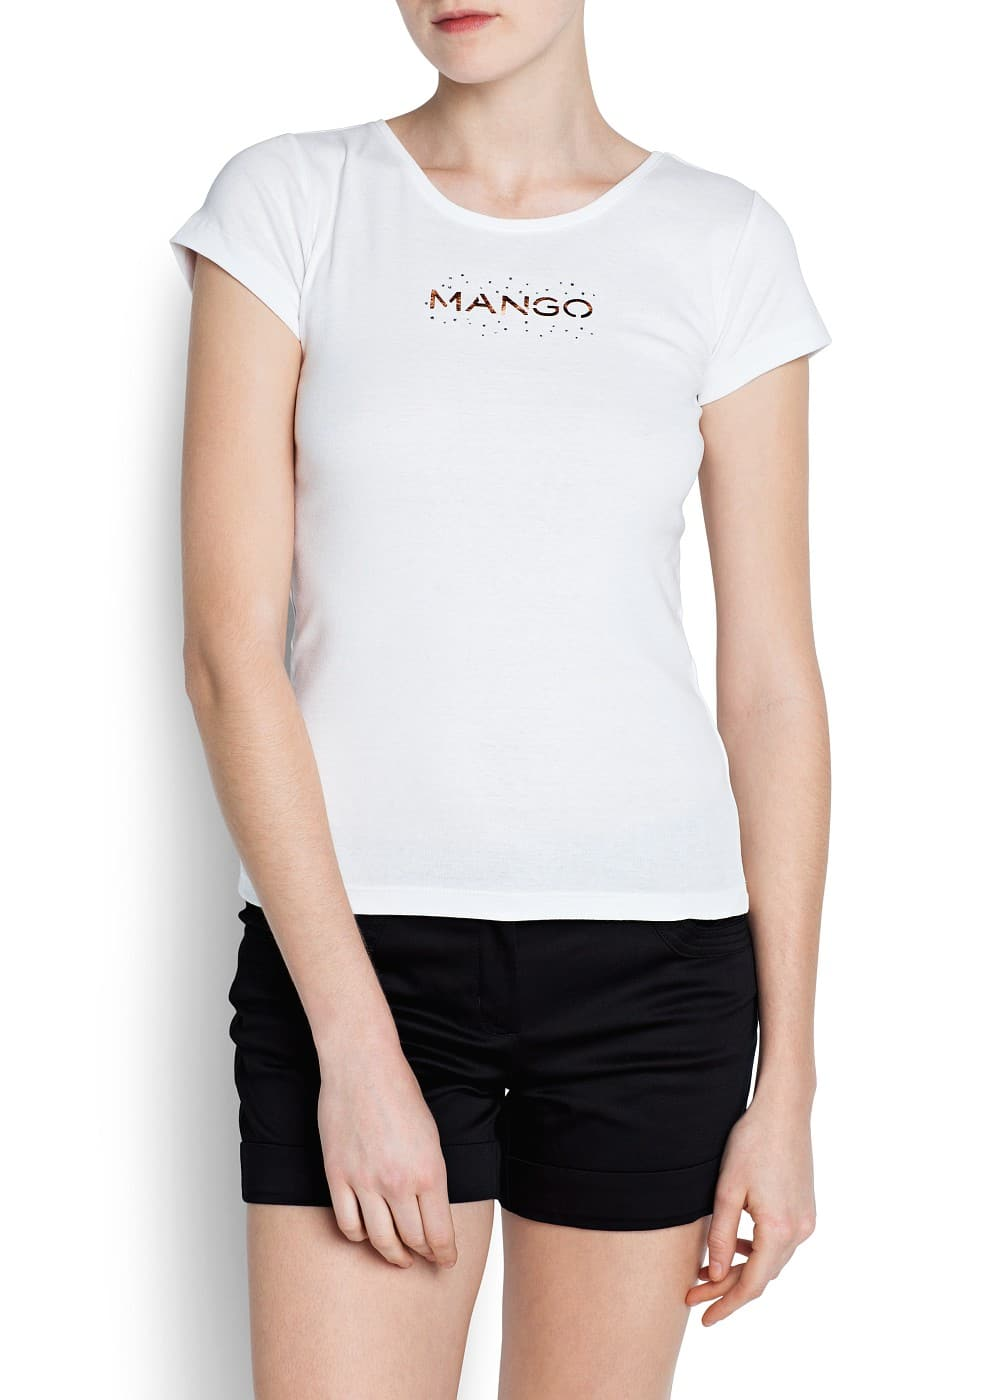 Strass logo short sleeved t-shirt | MANGO